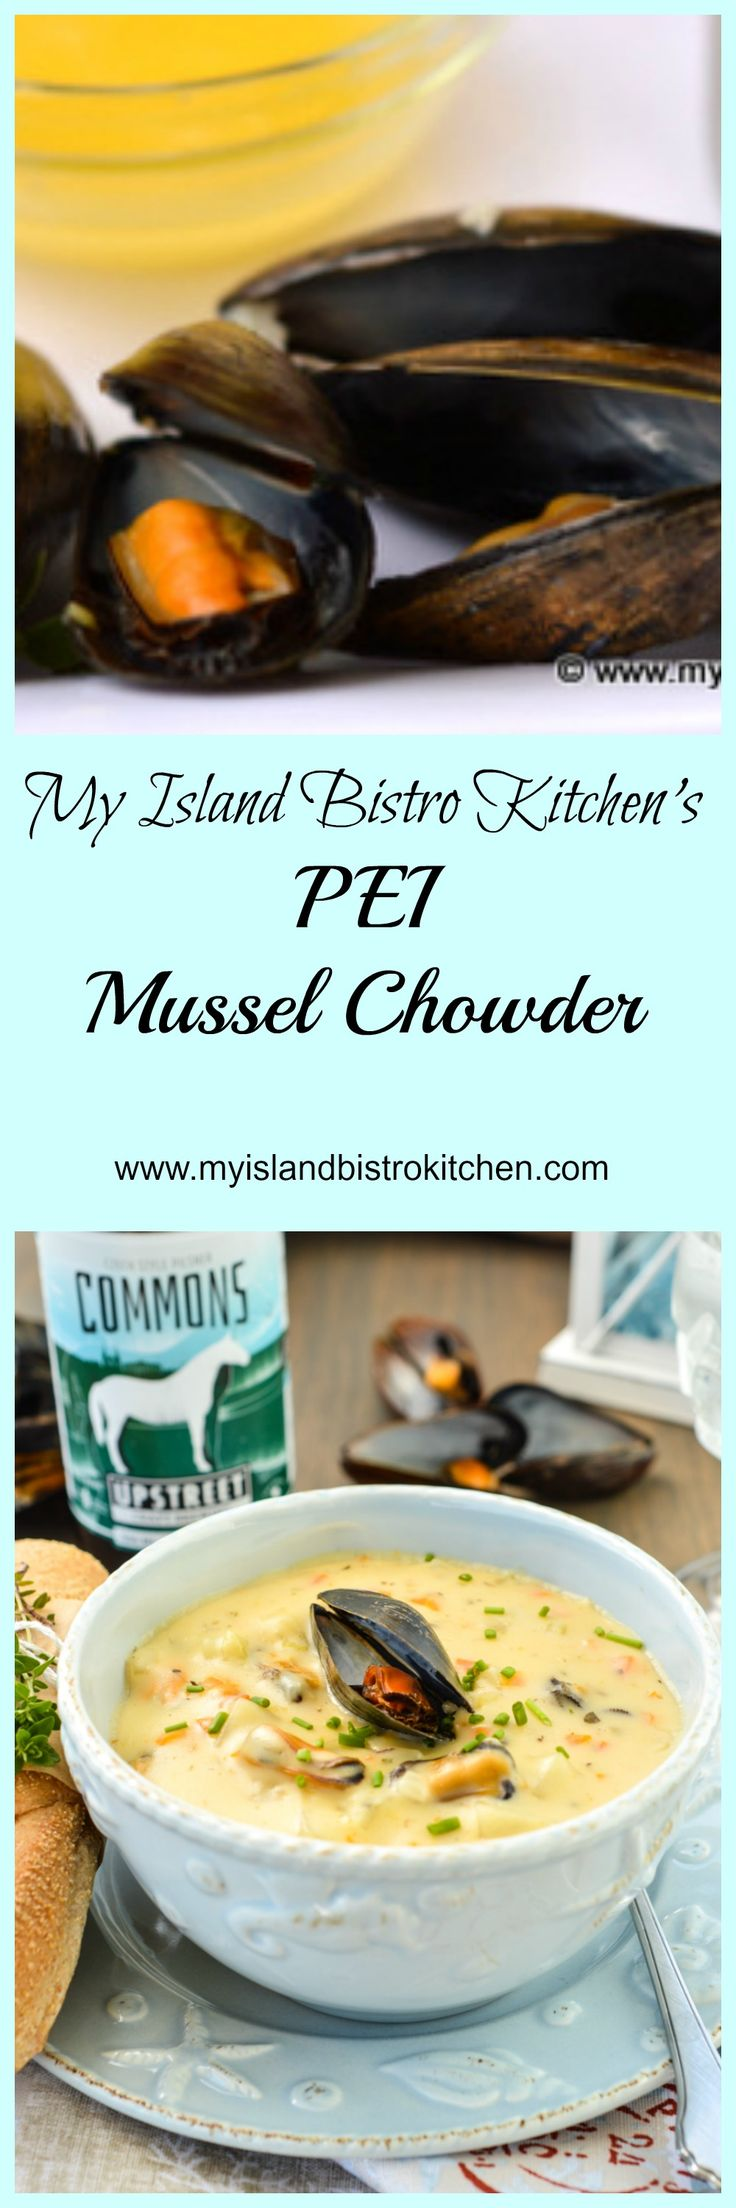 From the creator of My Island Bistro Kitchen food blog comes this delicious and luxuriously thick mussel chowder made with world-famous PEI mussels.